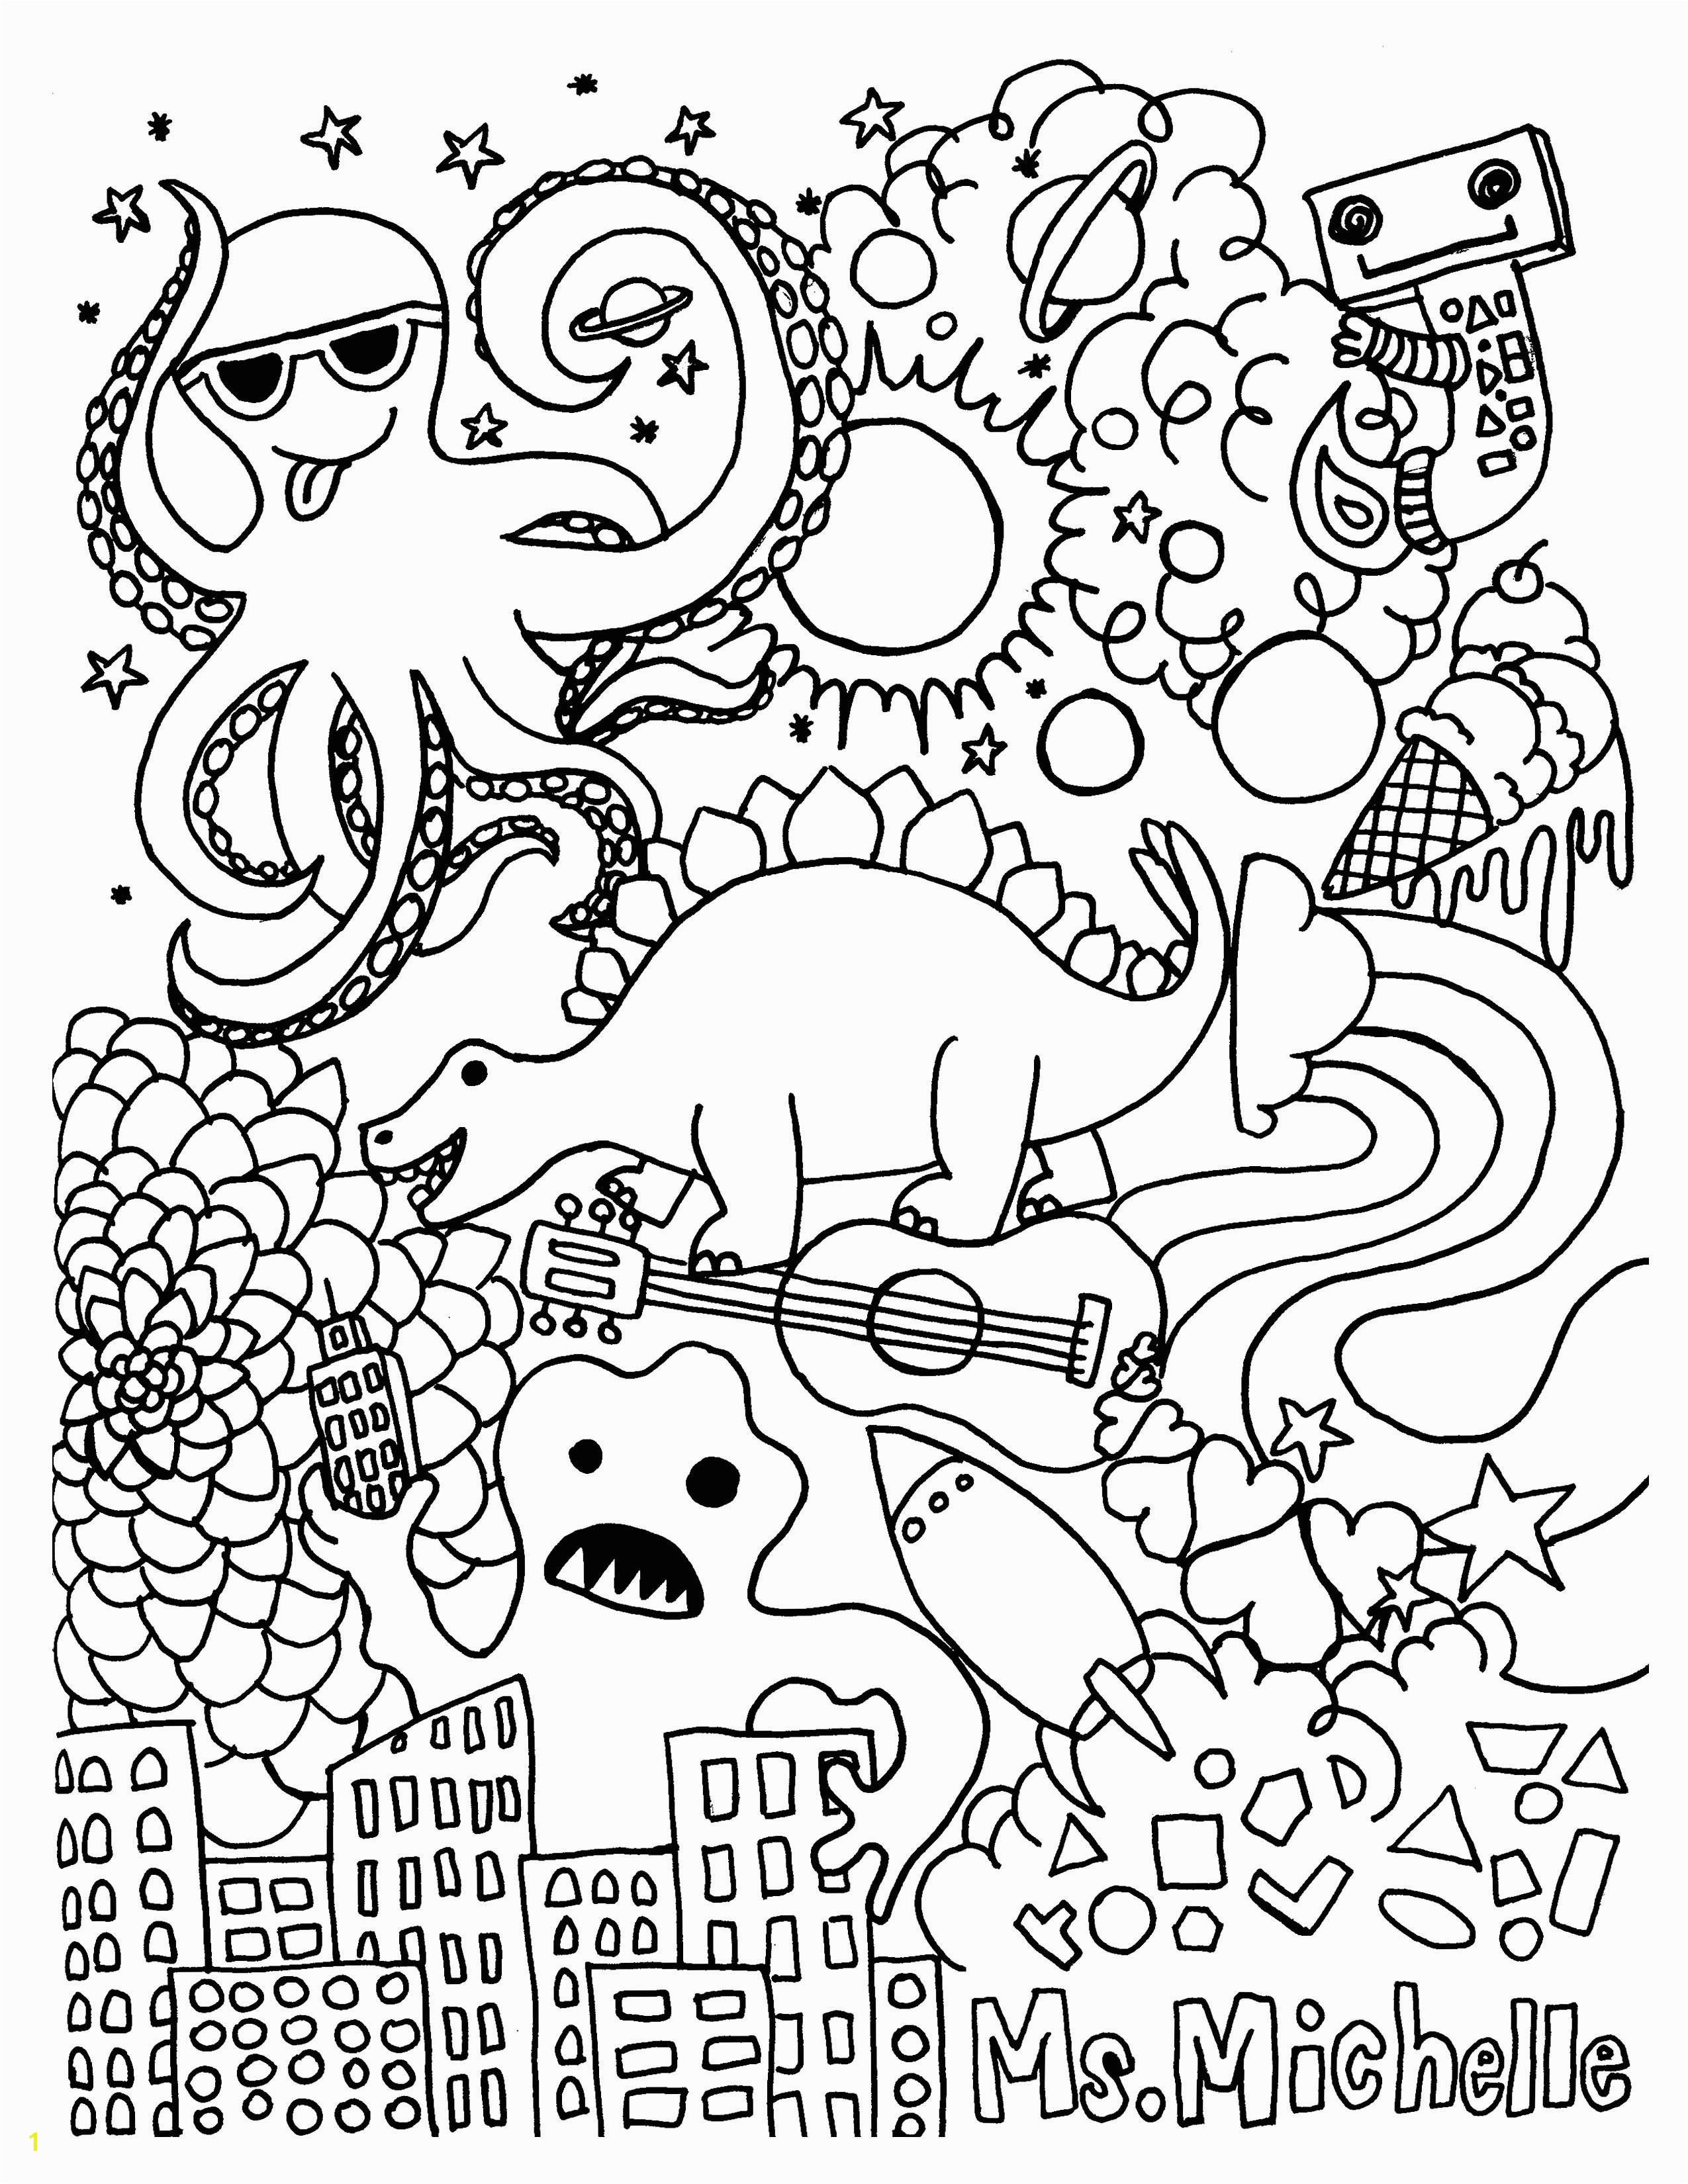 Printable Destiny Coloring Pages Cool Coloring Pages Printable Coloring Pages Coloring Book Unique Best Od